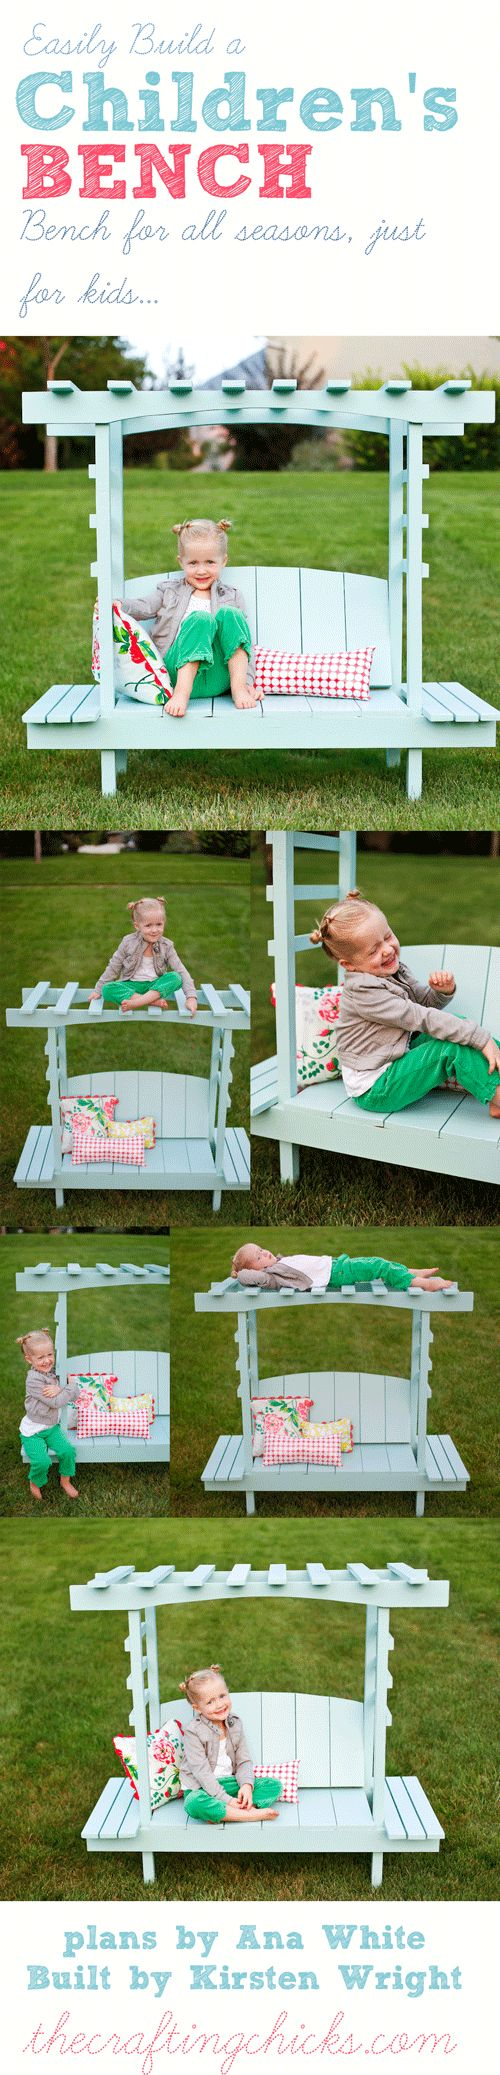 Build a Children's Arbor Bench! Cutest little bench!  thecraftingchicks.com #craftingchicks #anawhite #diy